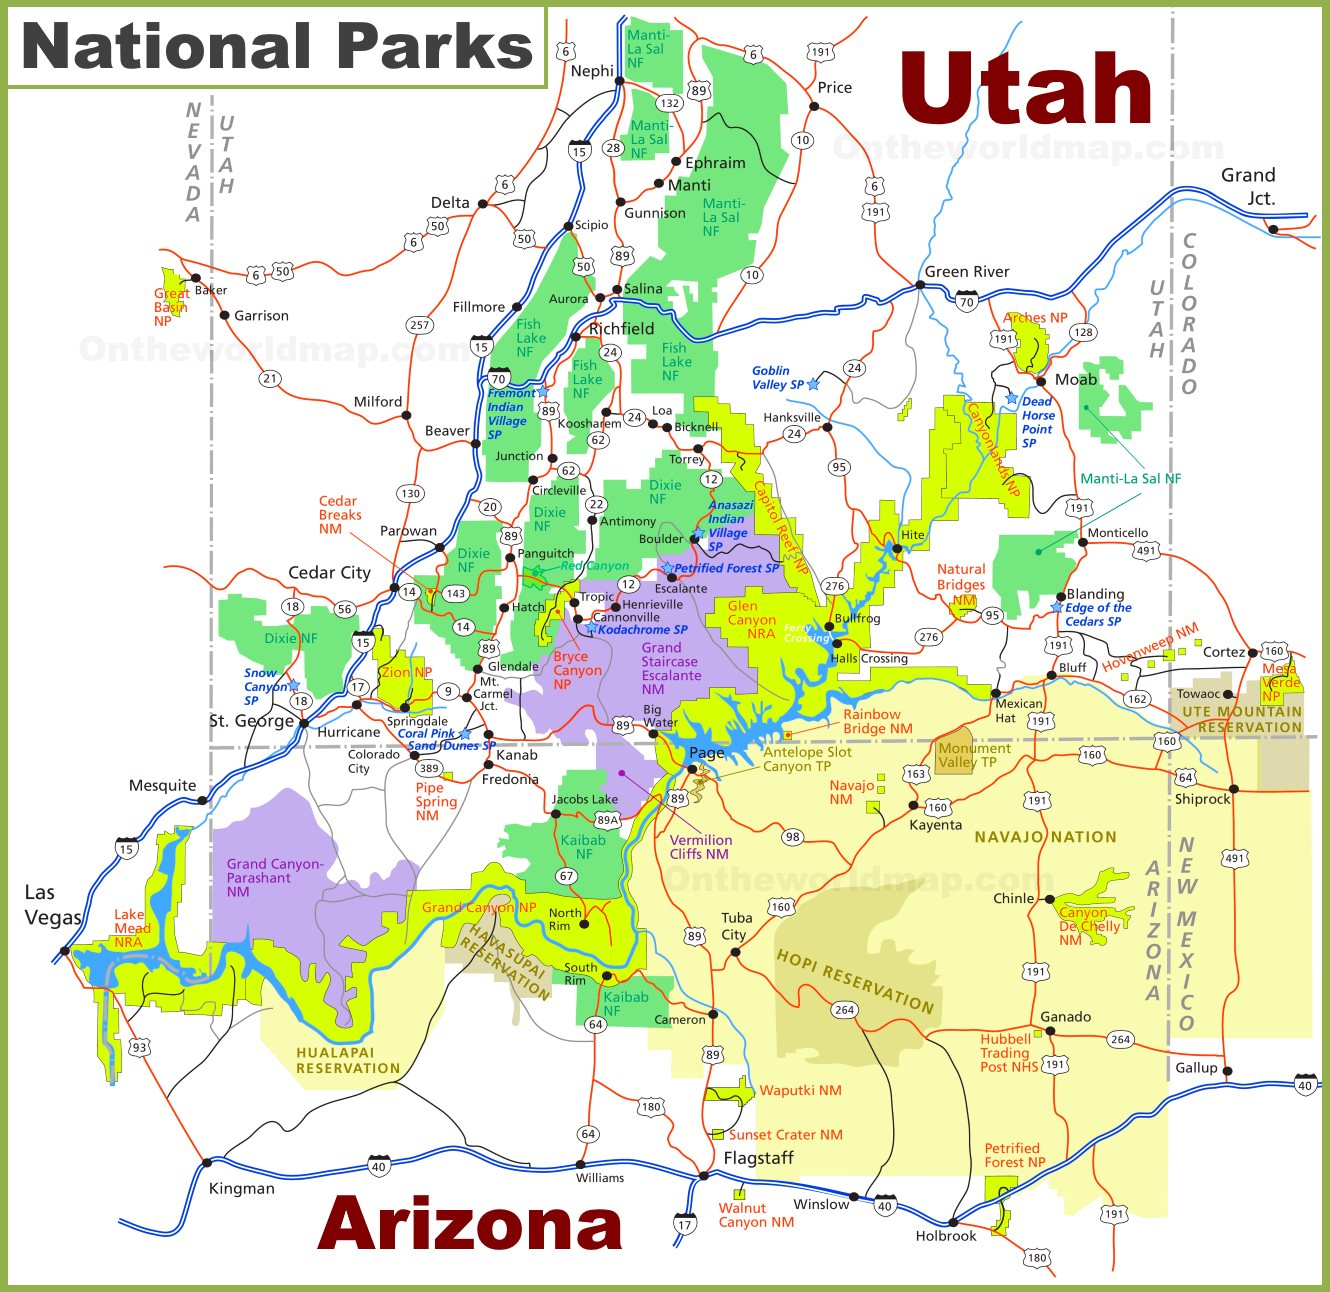 Utah National Parks Map - Map usa utah